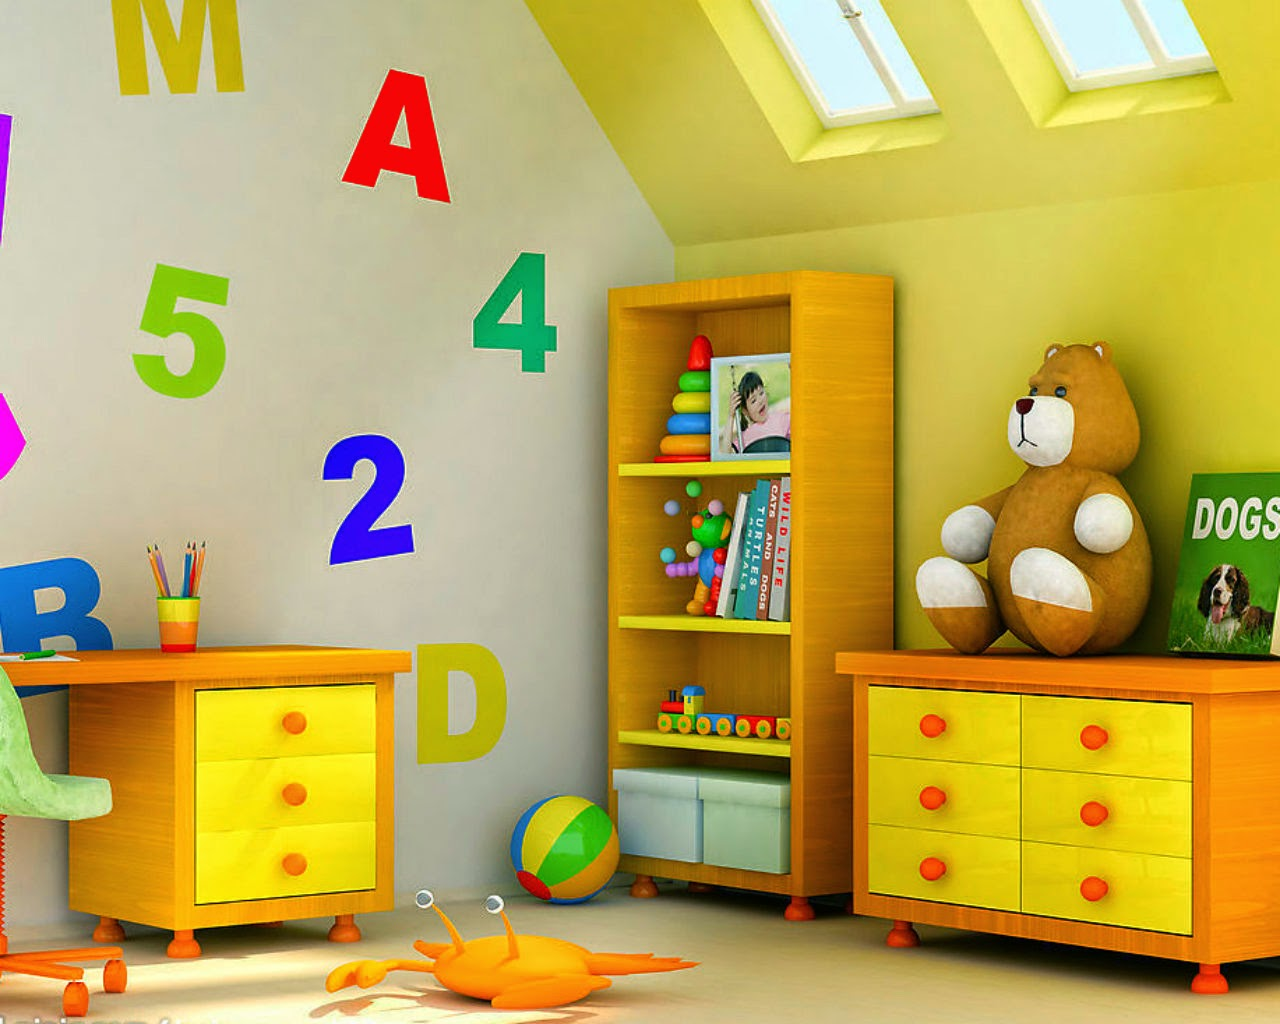 kids-room-decoration-with-teddy-bear-toy-doll-wallpaper-1280x1024.jpg